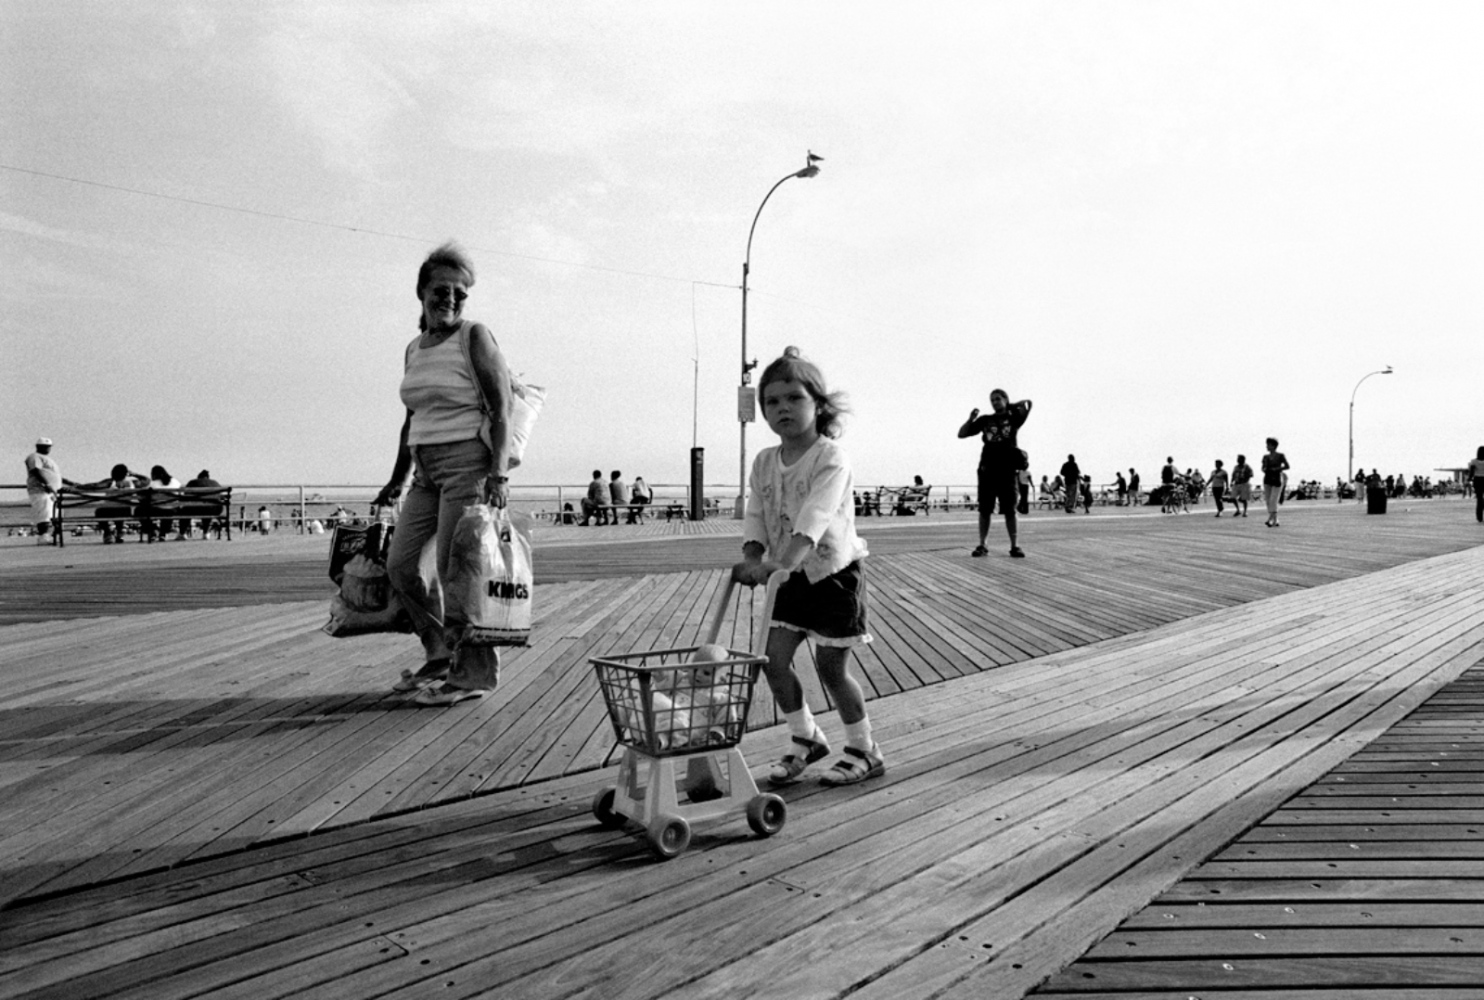 Pushing Pram, Coney Island, NY, July 4, 2004